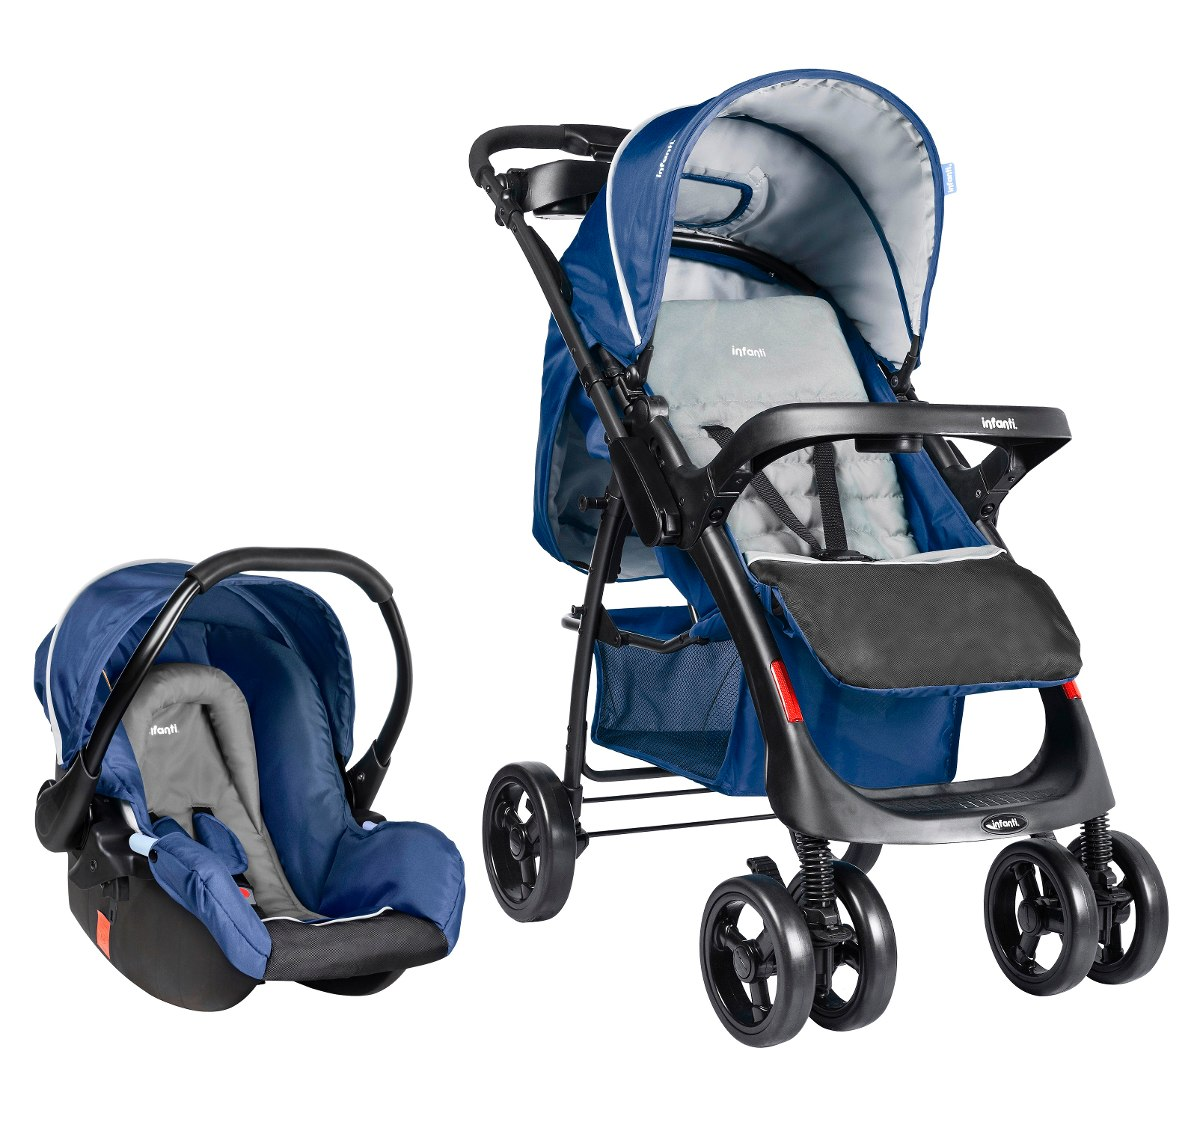 Coche para bebe infanti andes travel system mist wine s for Coches para bebes